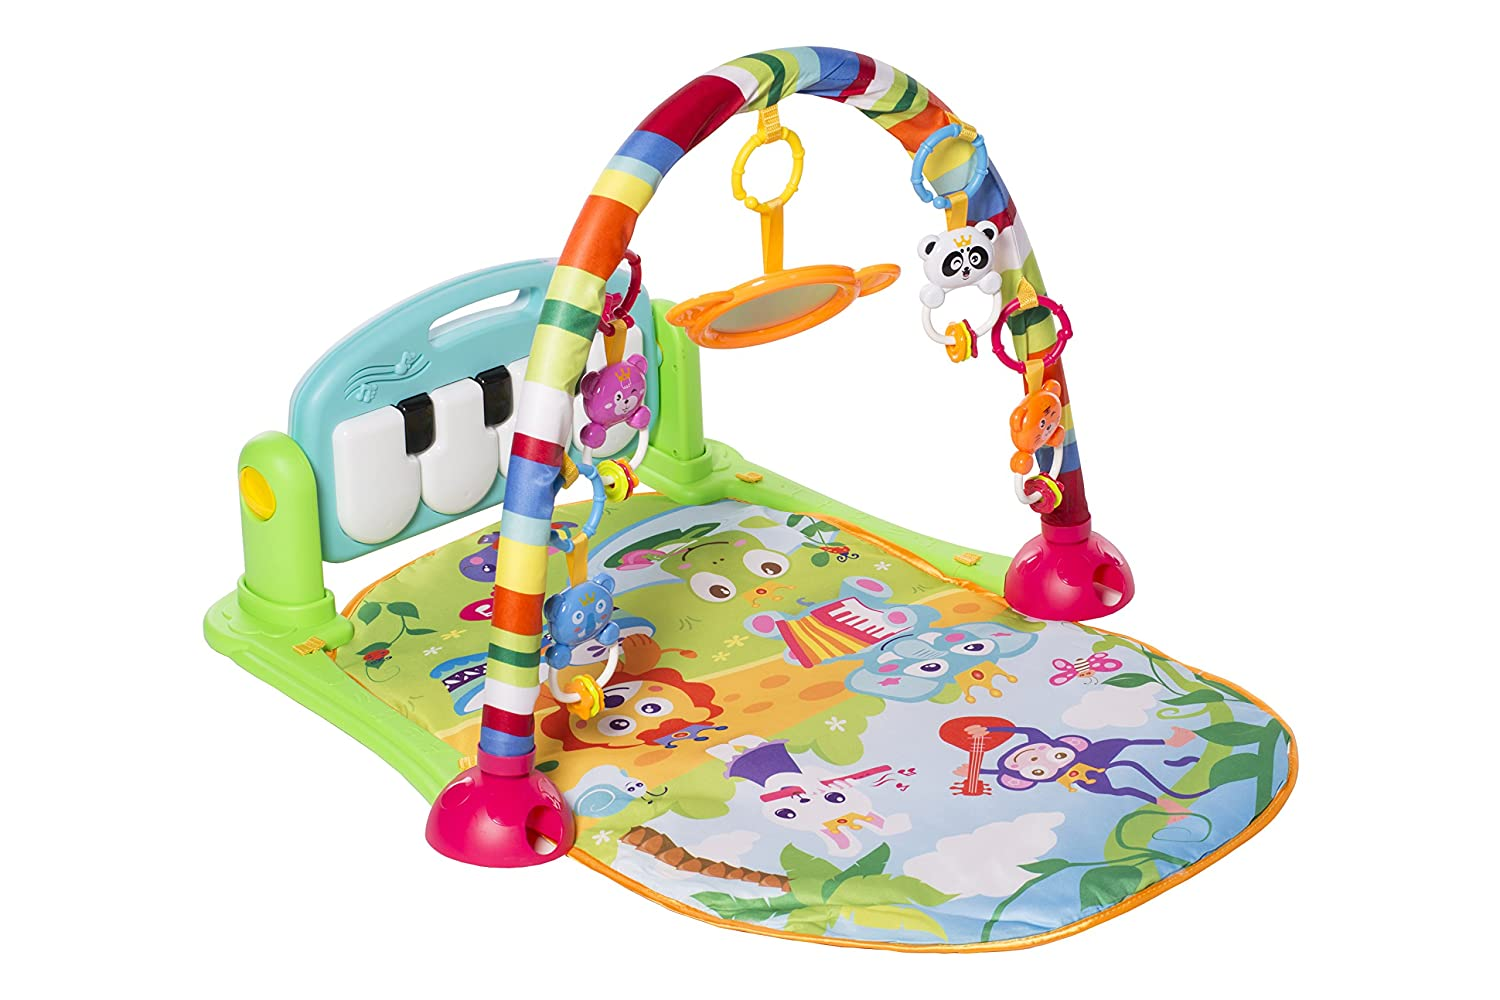 Blue MooToys Kick and Play Newborn Toy with Piano for Baby 1-36 Month Lay and Play Play Mat Activity Gym for Baby MT-103 Sit and Play Activity Toys